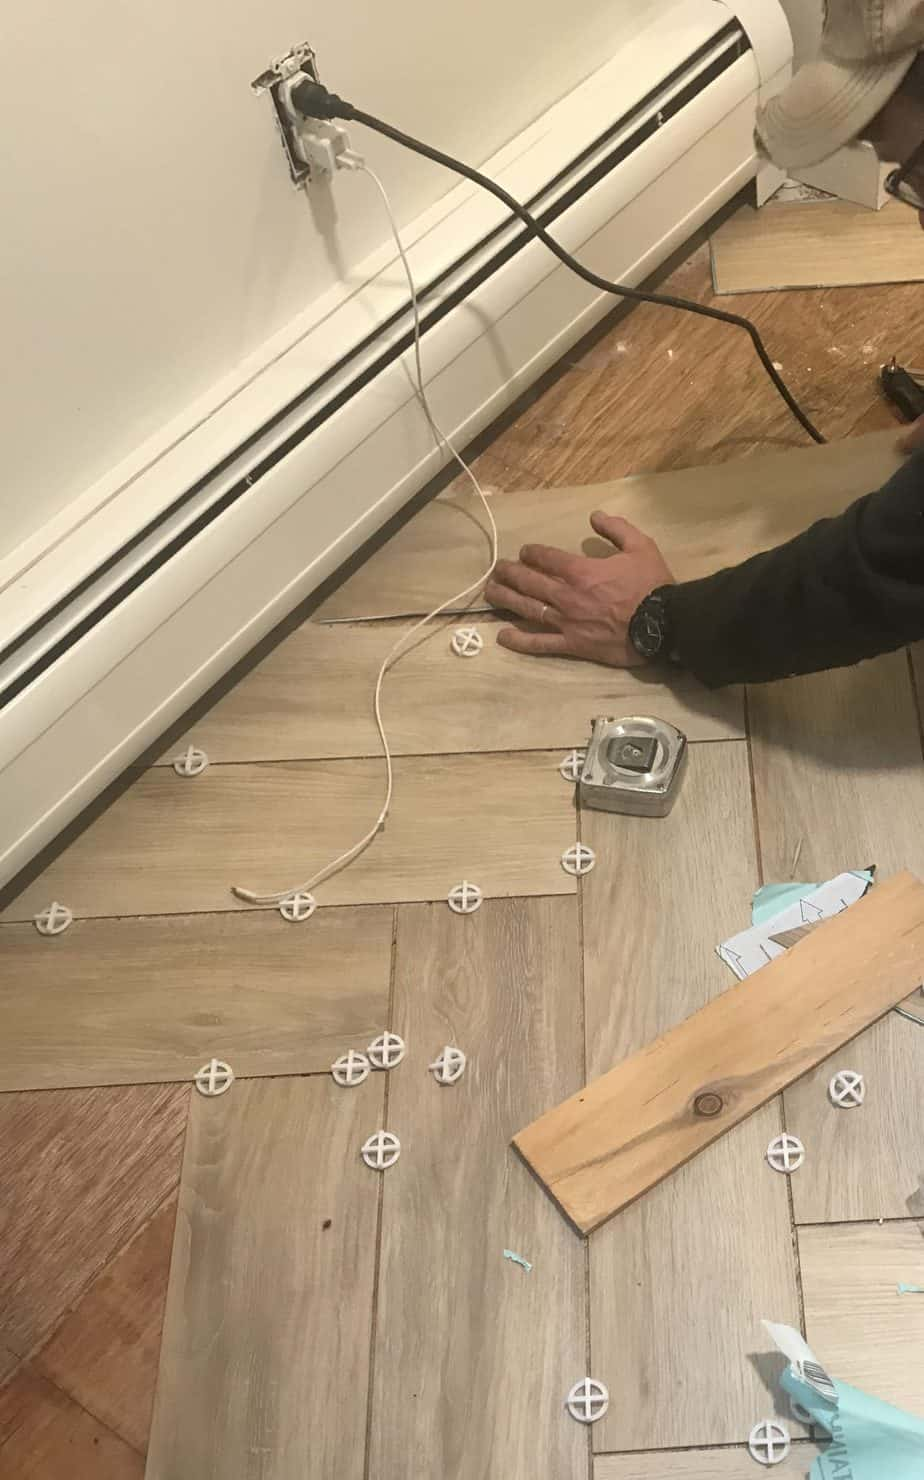 Peel and stick tile being laid in a herringbone pattern on the floor.